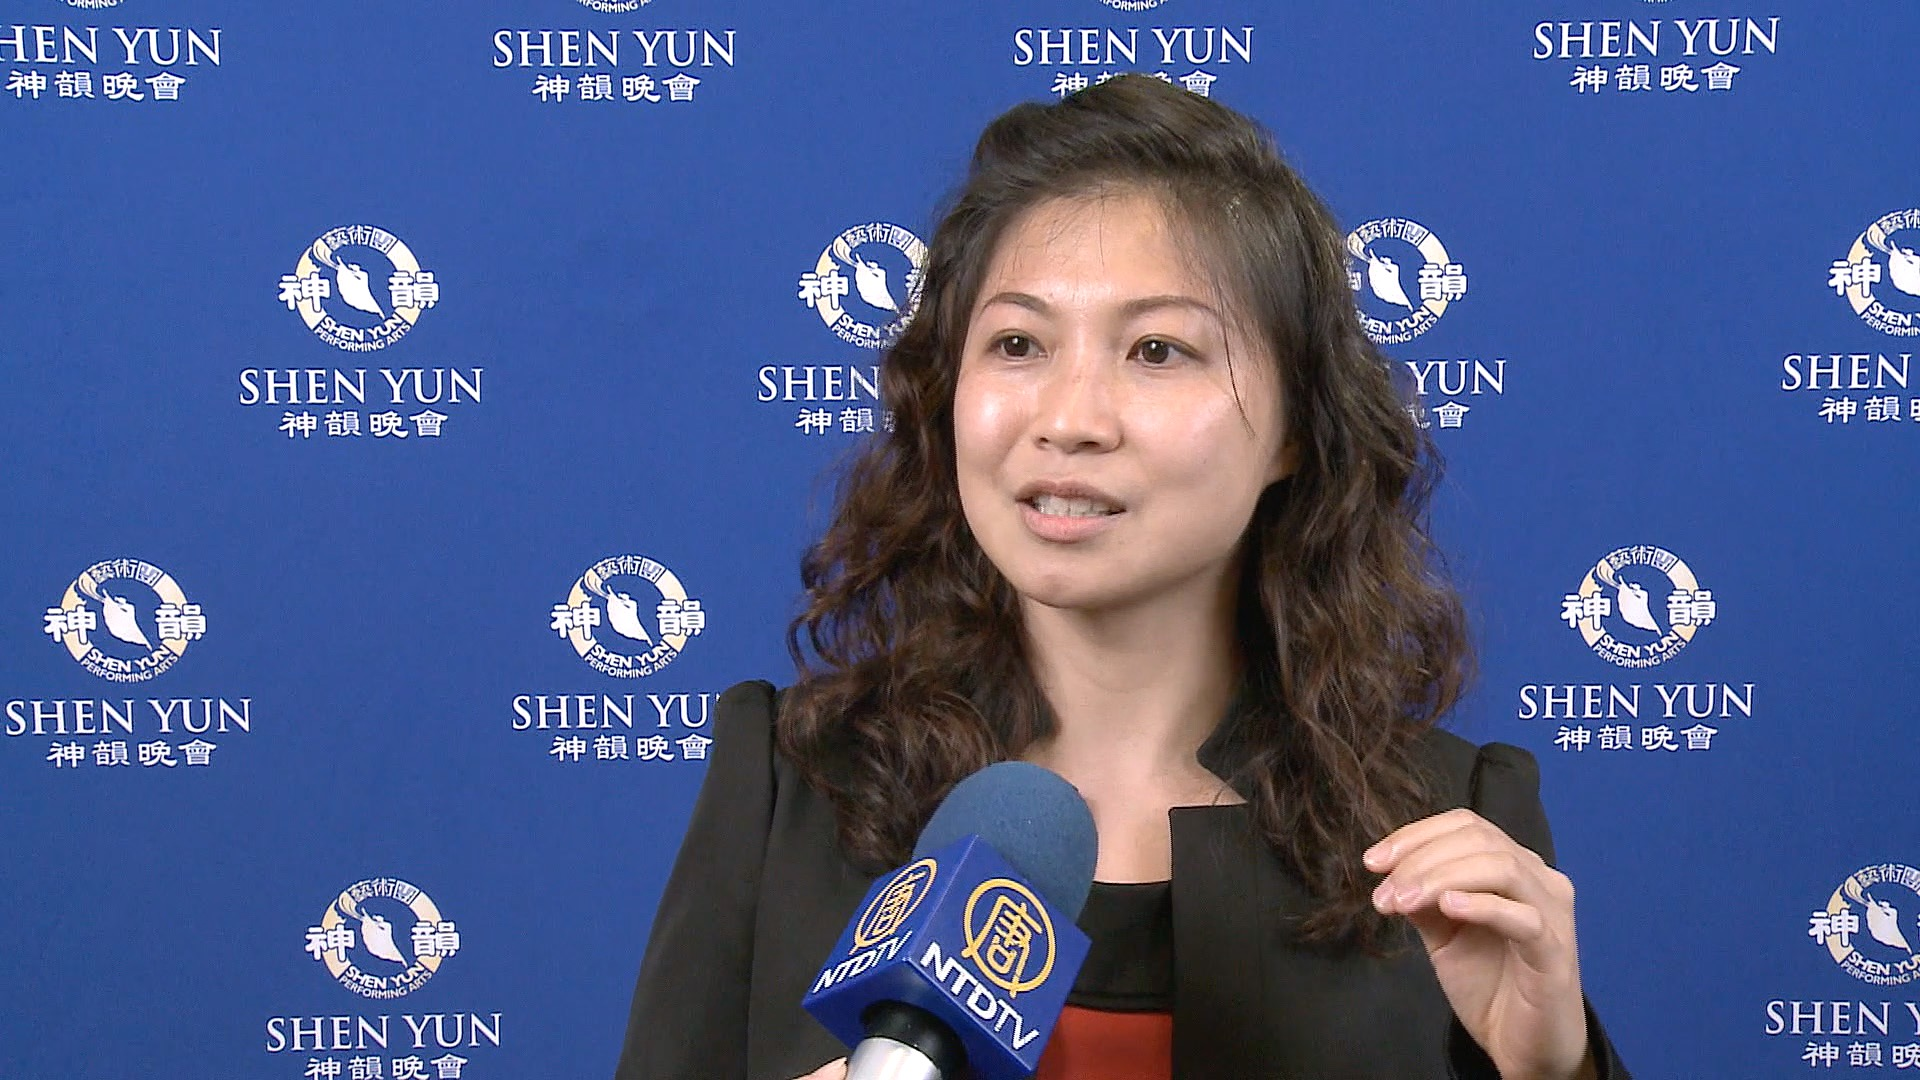 Shen Yun Symphony Orchestra Touches Tainan City, Met With Praise